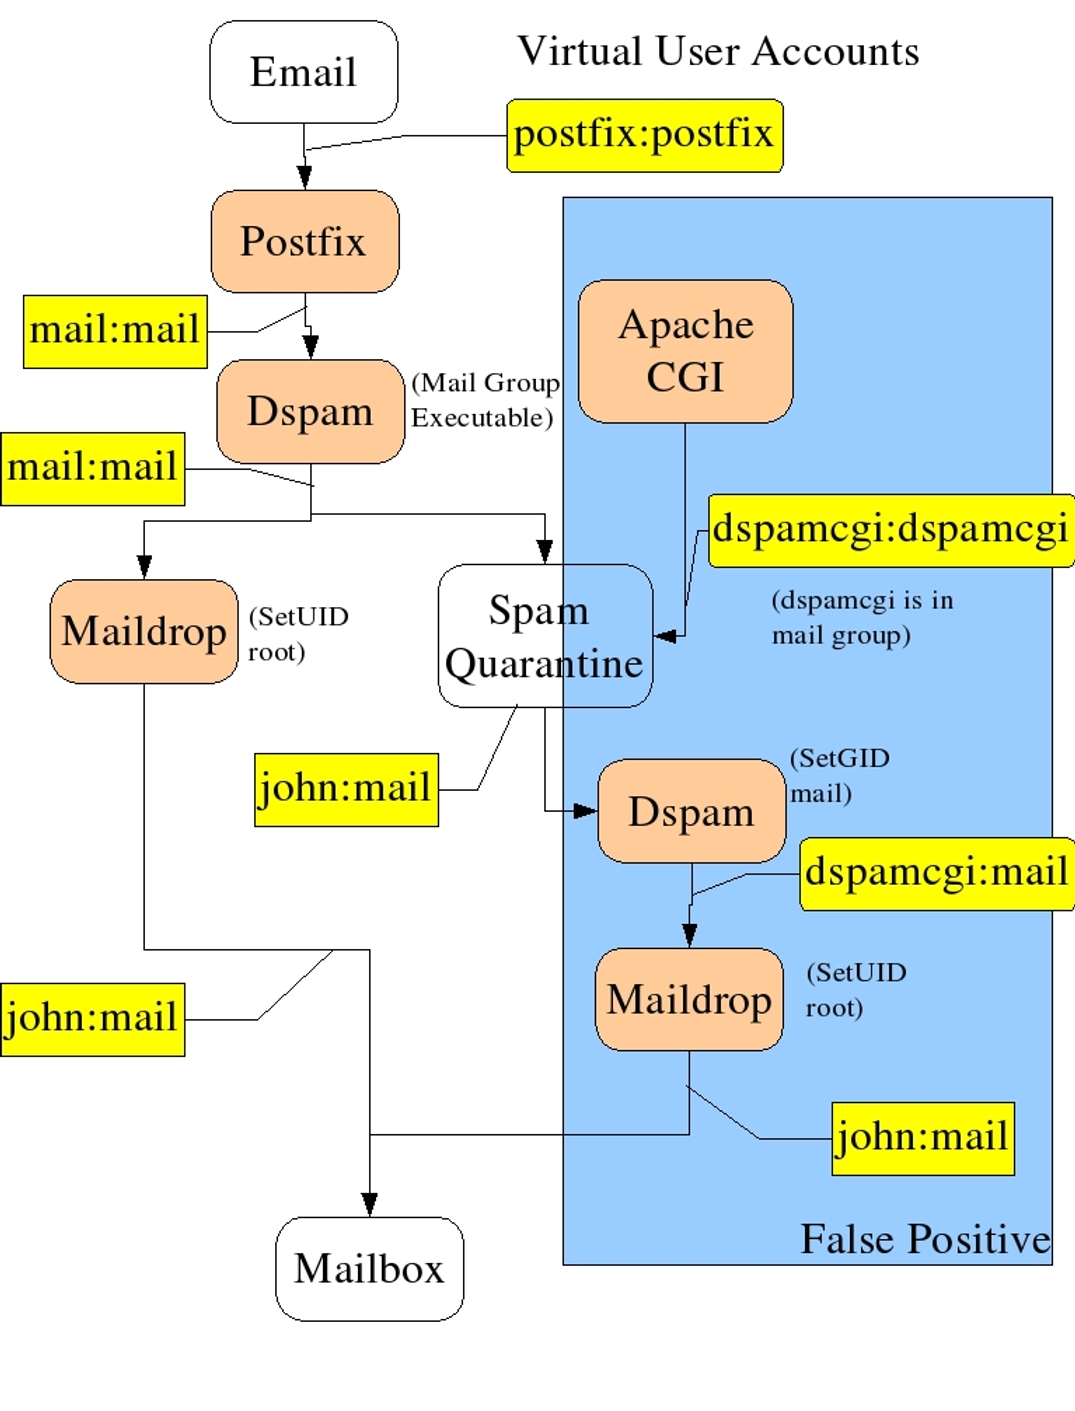 email flow diagram wiring for dimmer switch uk mail servers resolving the identity crisis